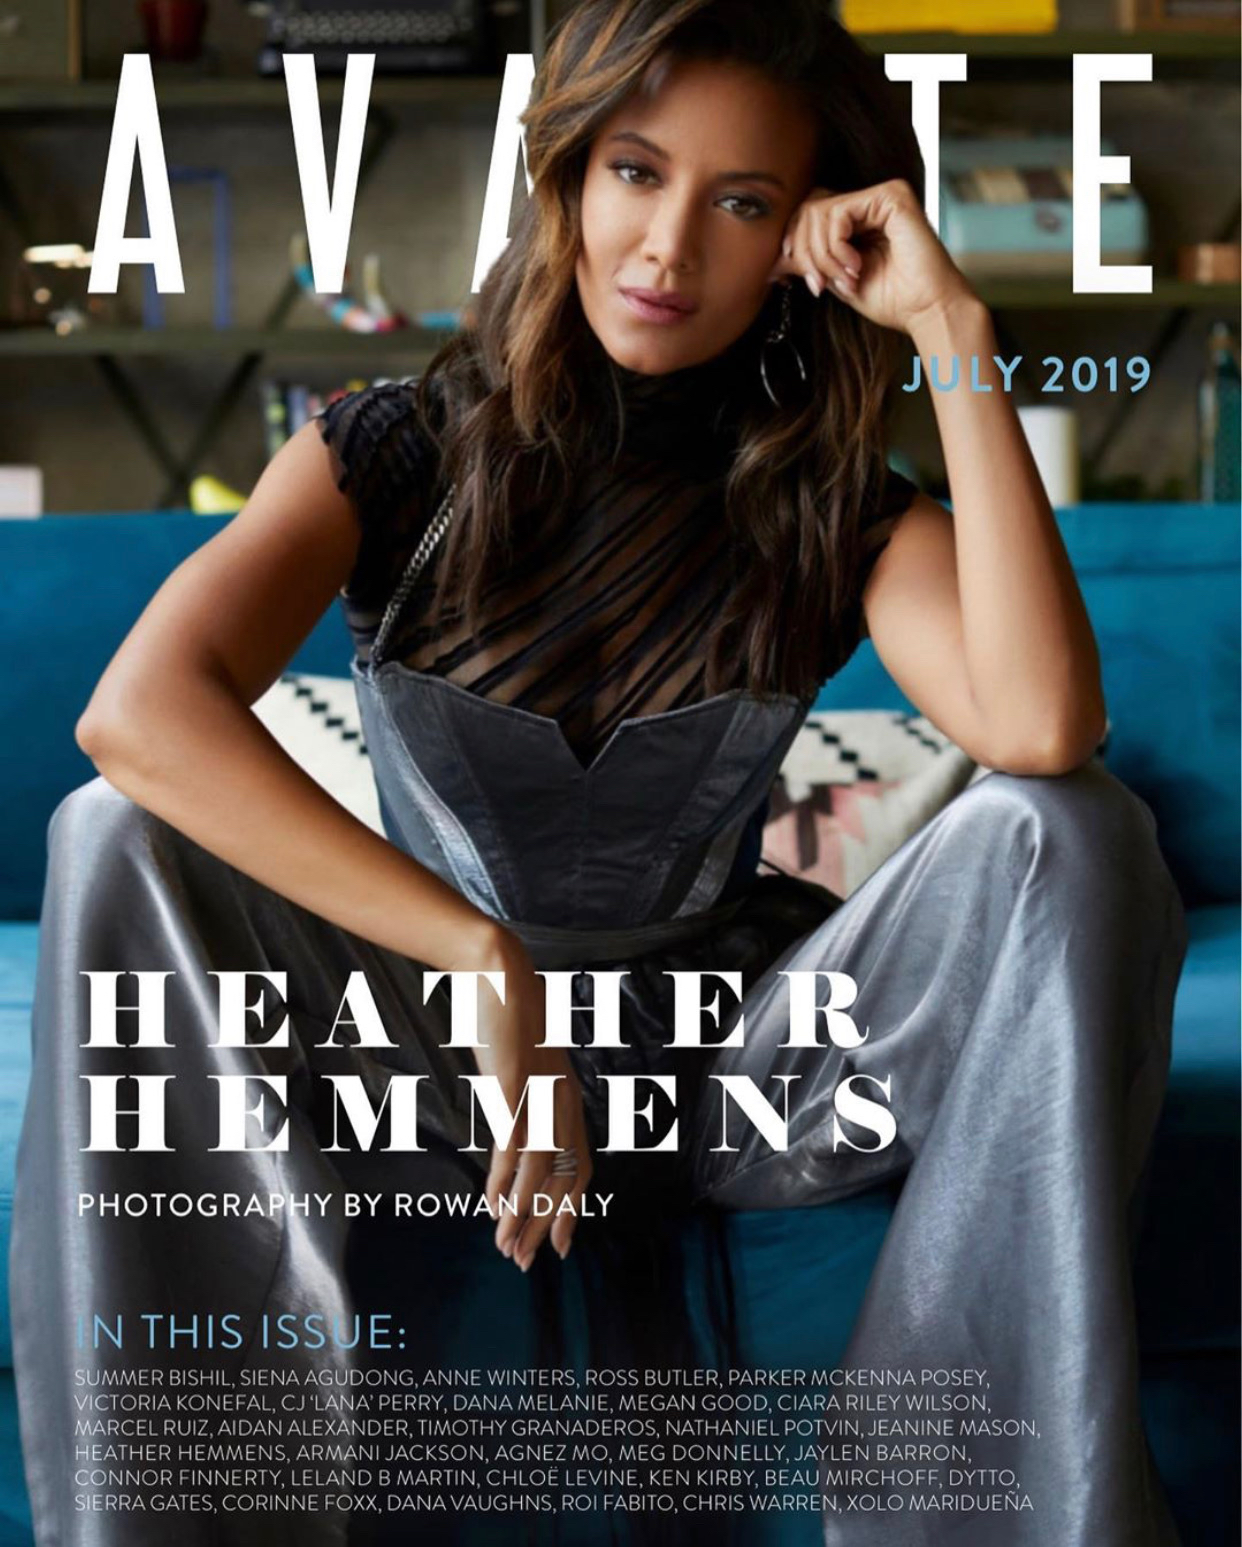 Avante Magazine july 2019    Heather Hemmens   2019